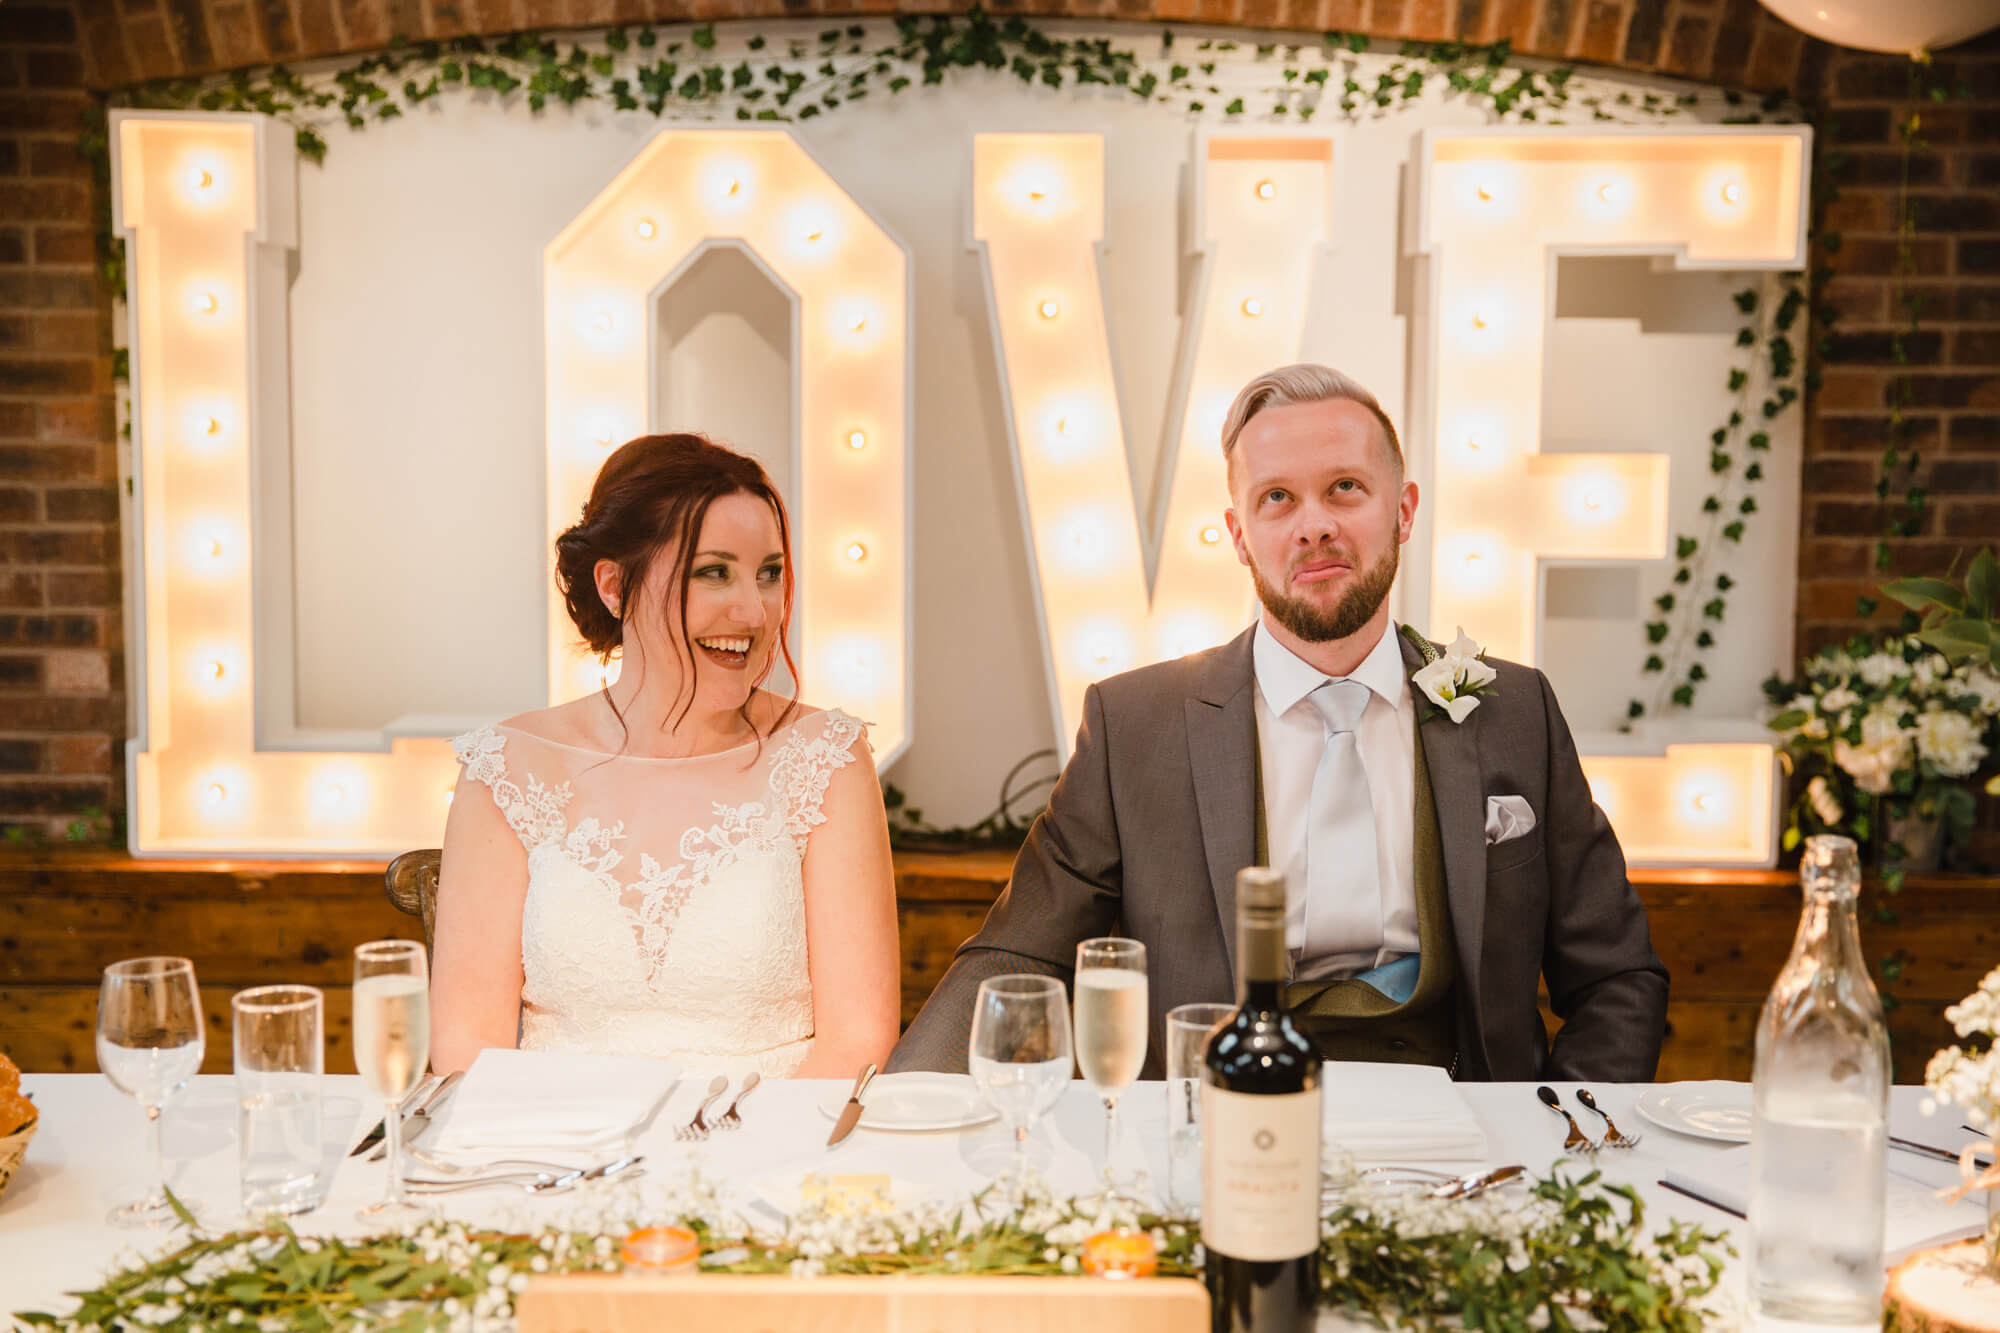 bride and groom sat at top table in foreground with LOVE letters in backdrop